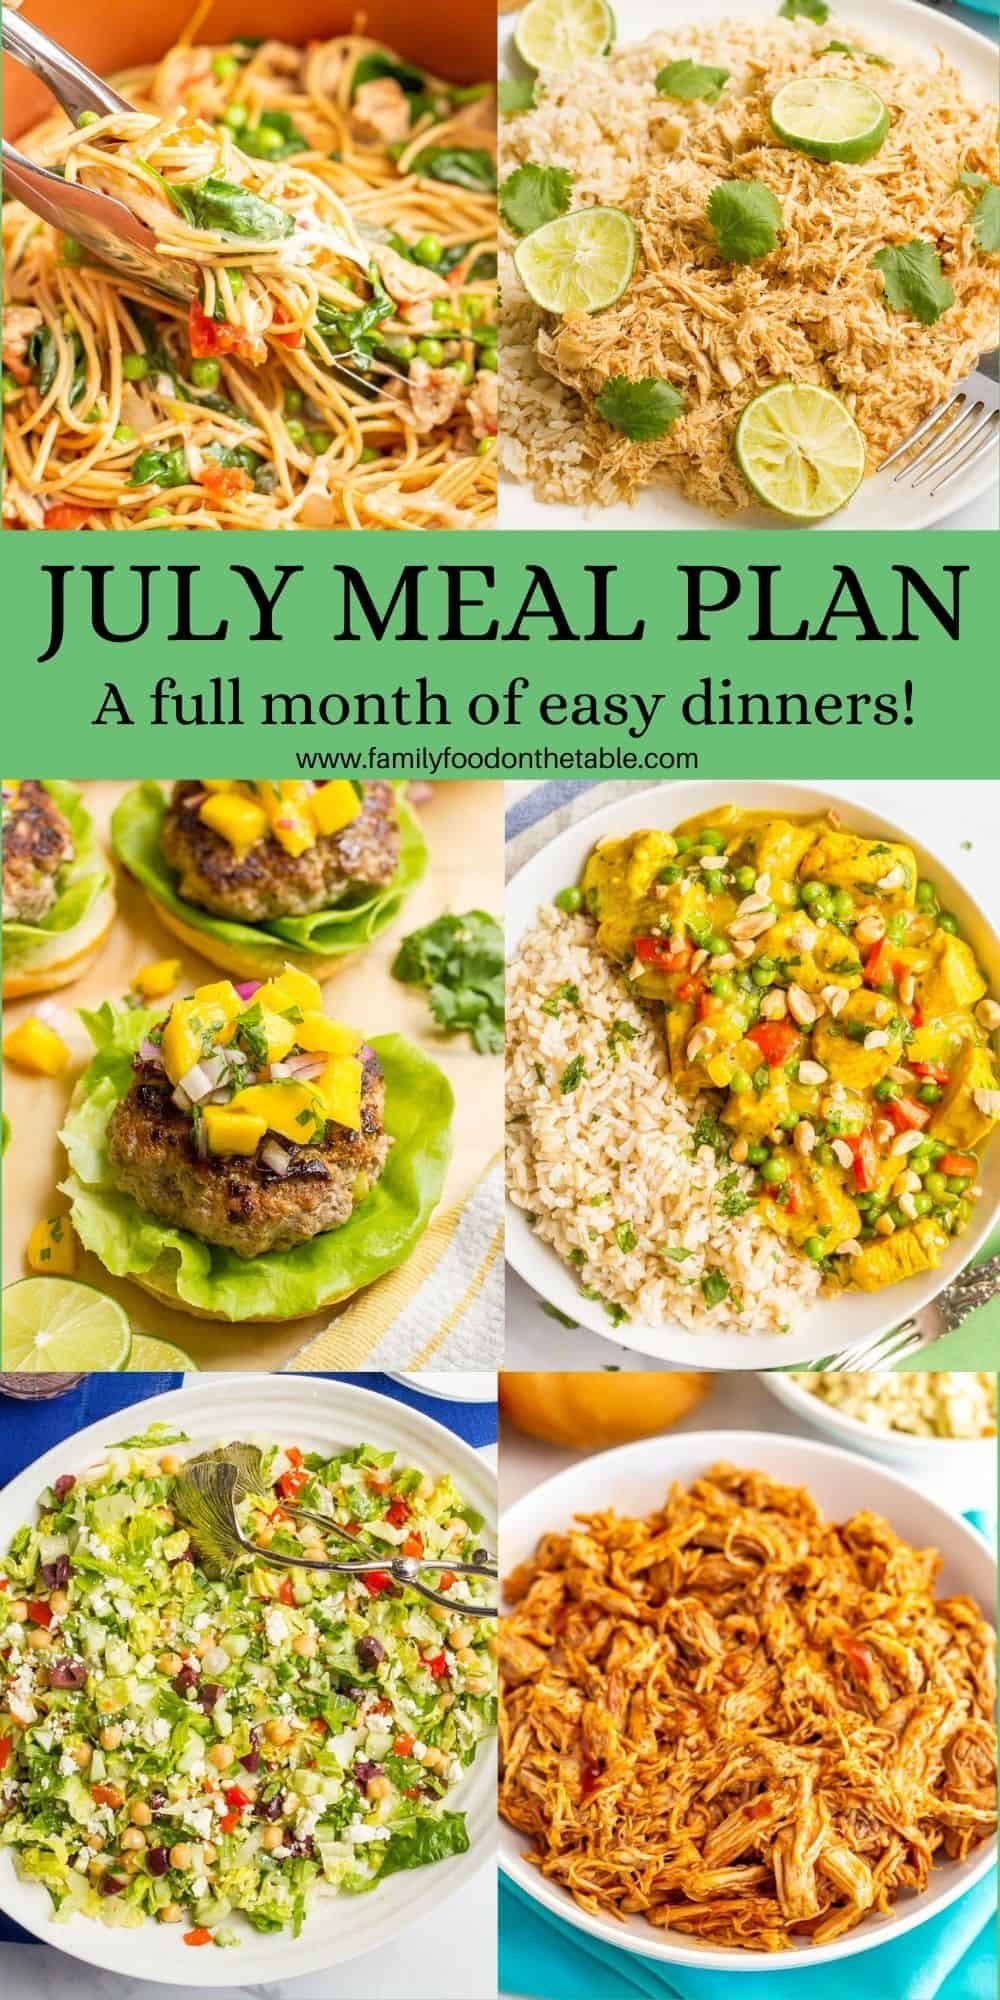 A collage of 6 photos of easy dinner ideas with a July Meal Plan text block in the middle